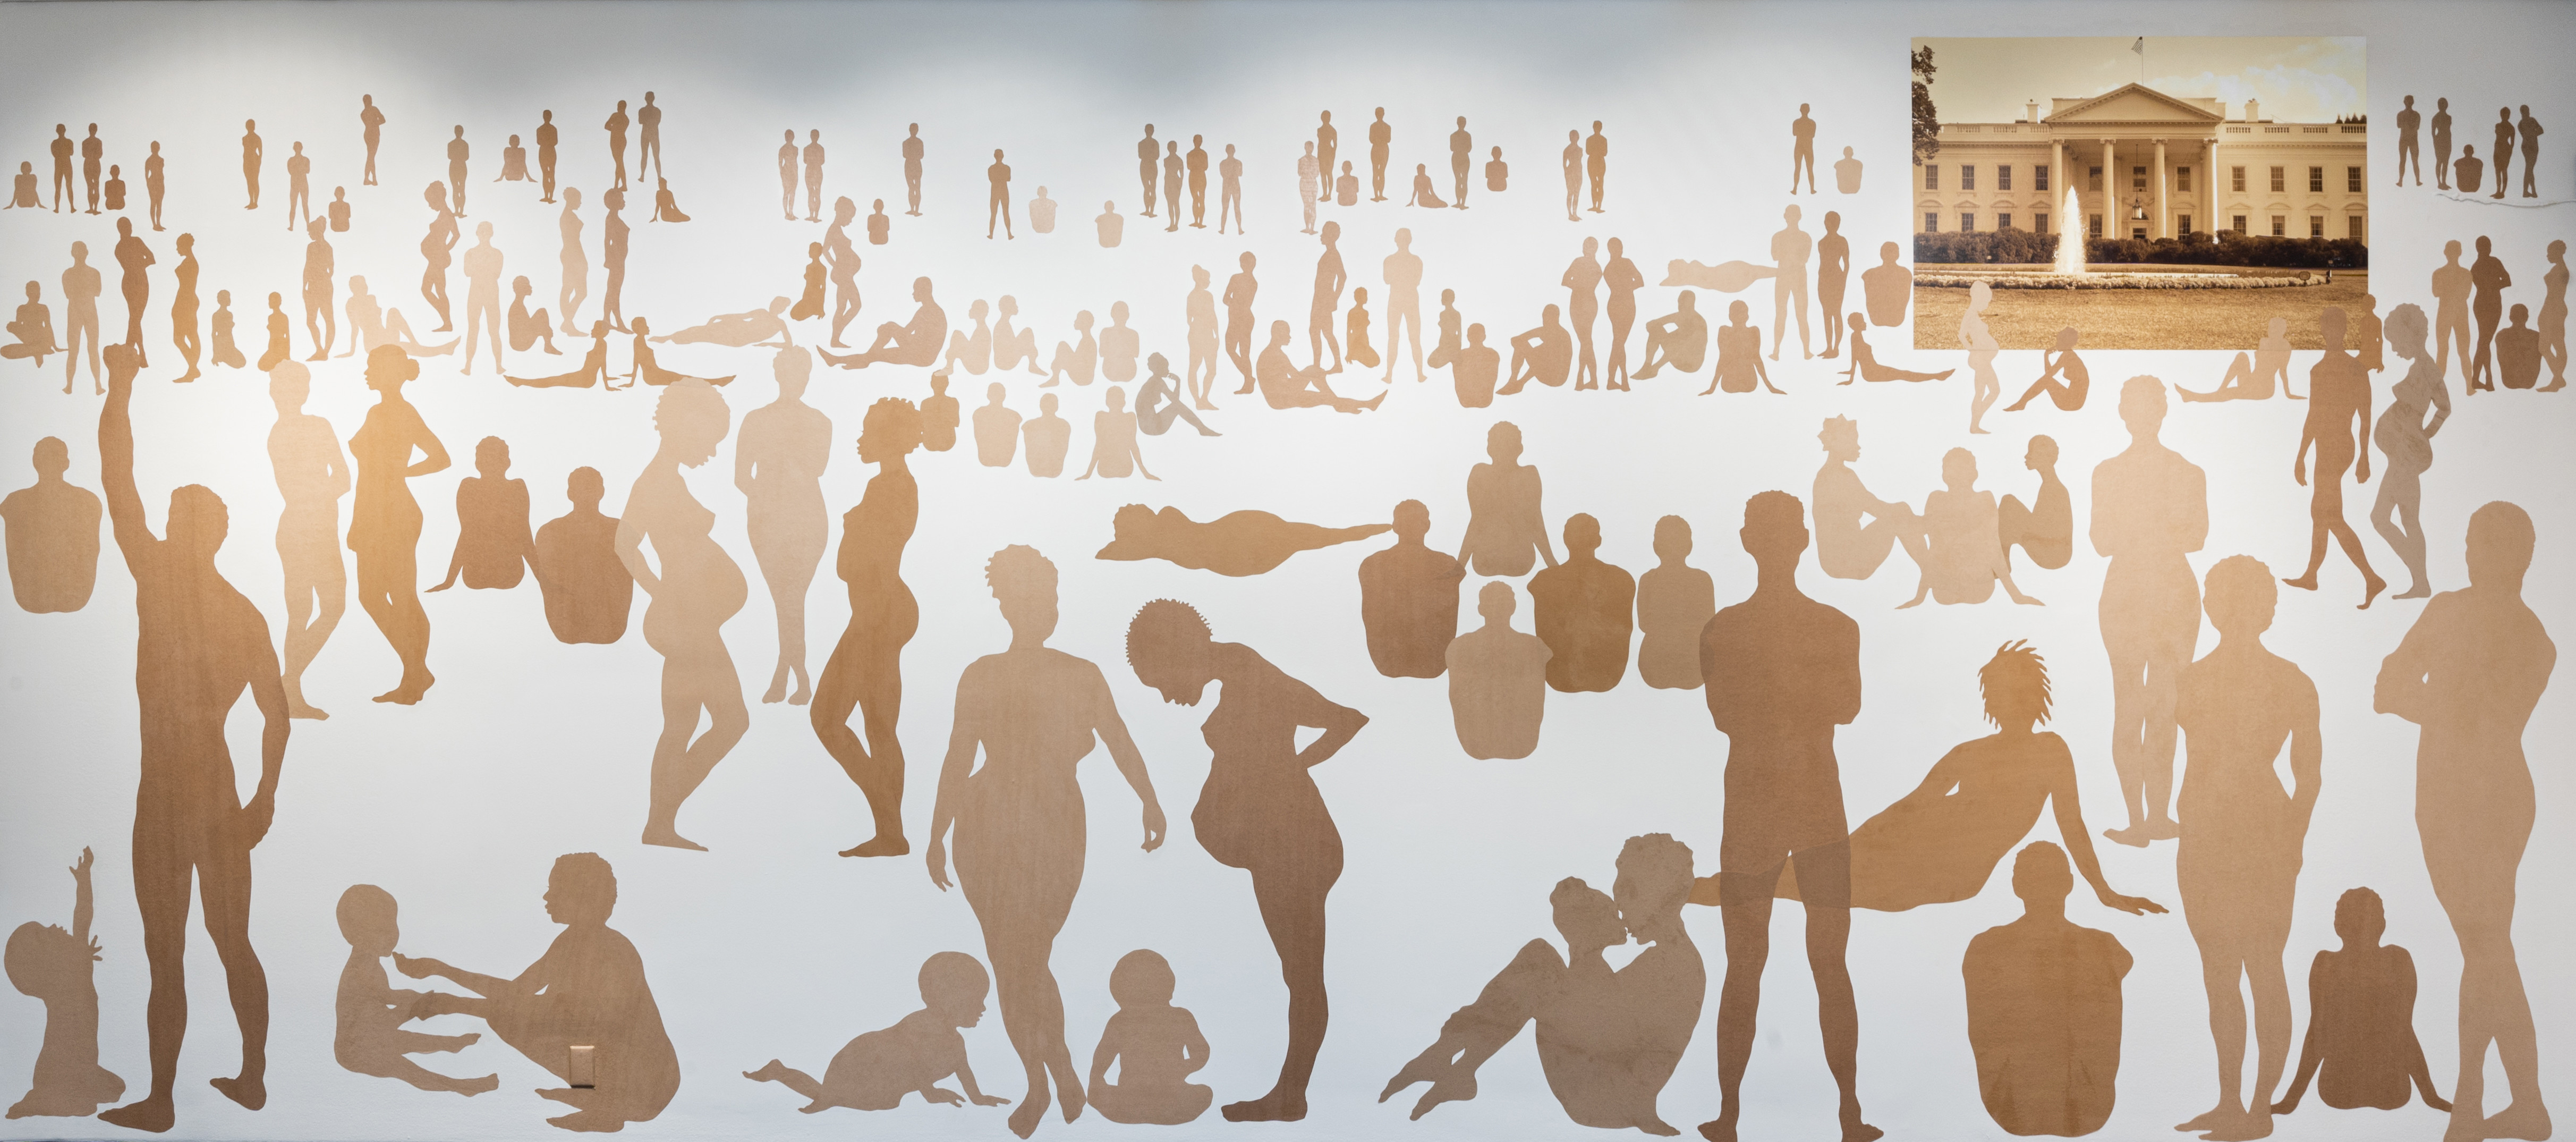 Over 100 silhouetted figures of varying ages, shapes, poses, and skin tones on a large white wall. In the top-right corner is a rectangular picture of the White House.